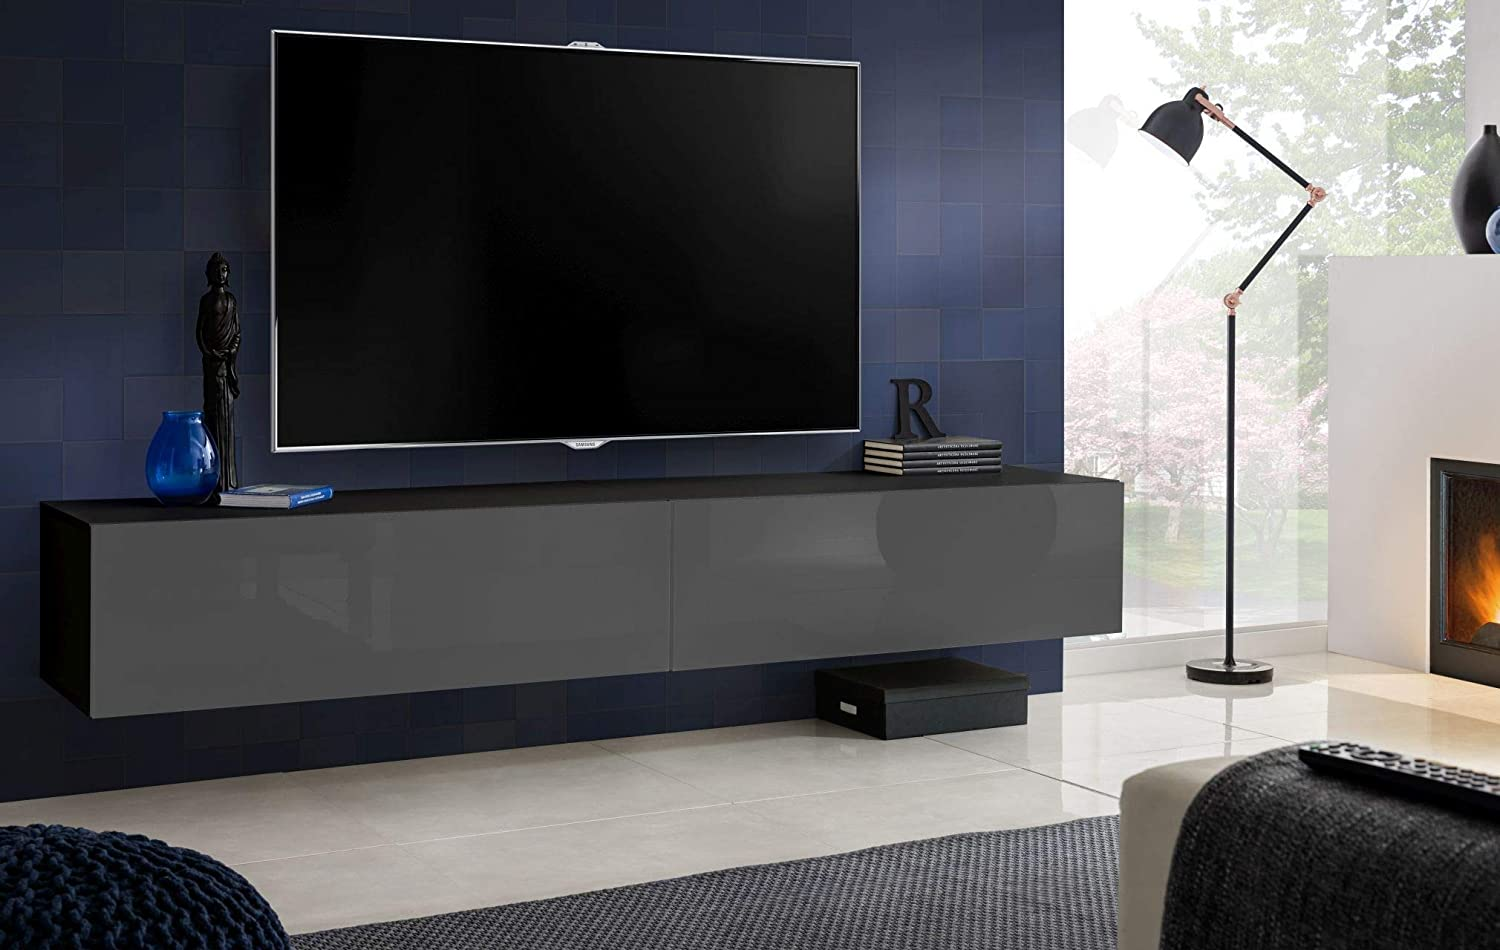 Carcass in White Matt//Front in Black High Gloss ExtremeFurniture T34-200cm TV Wall Cabinet